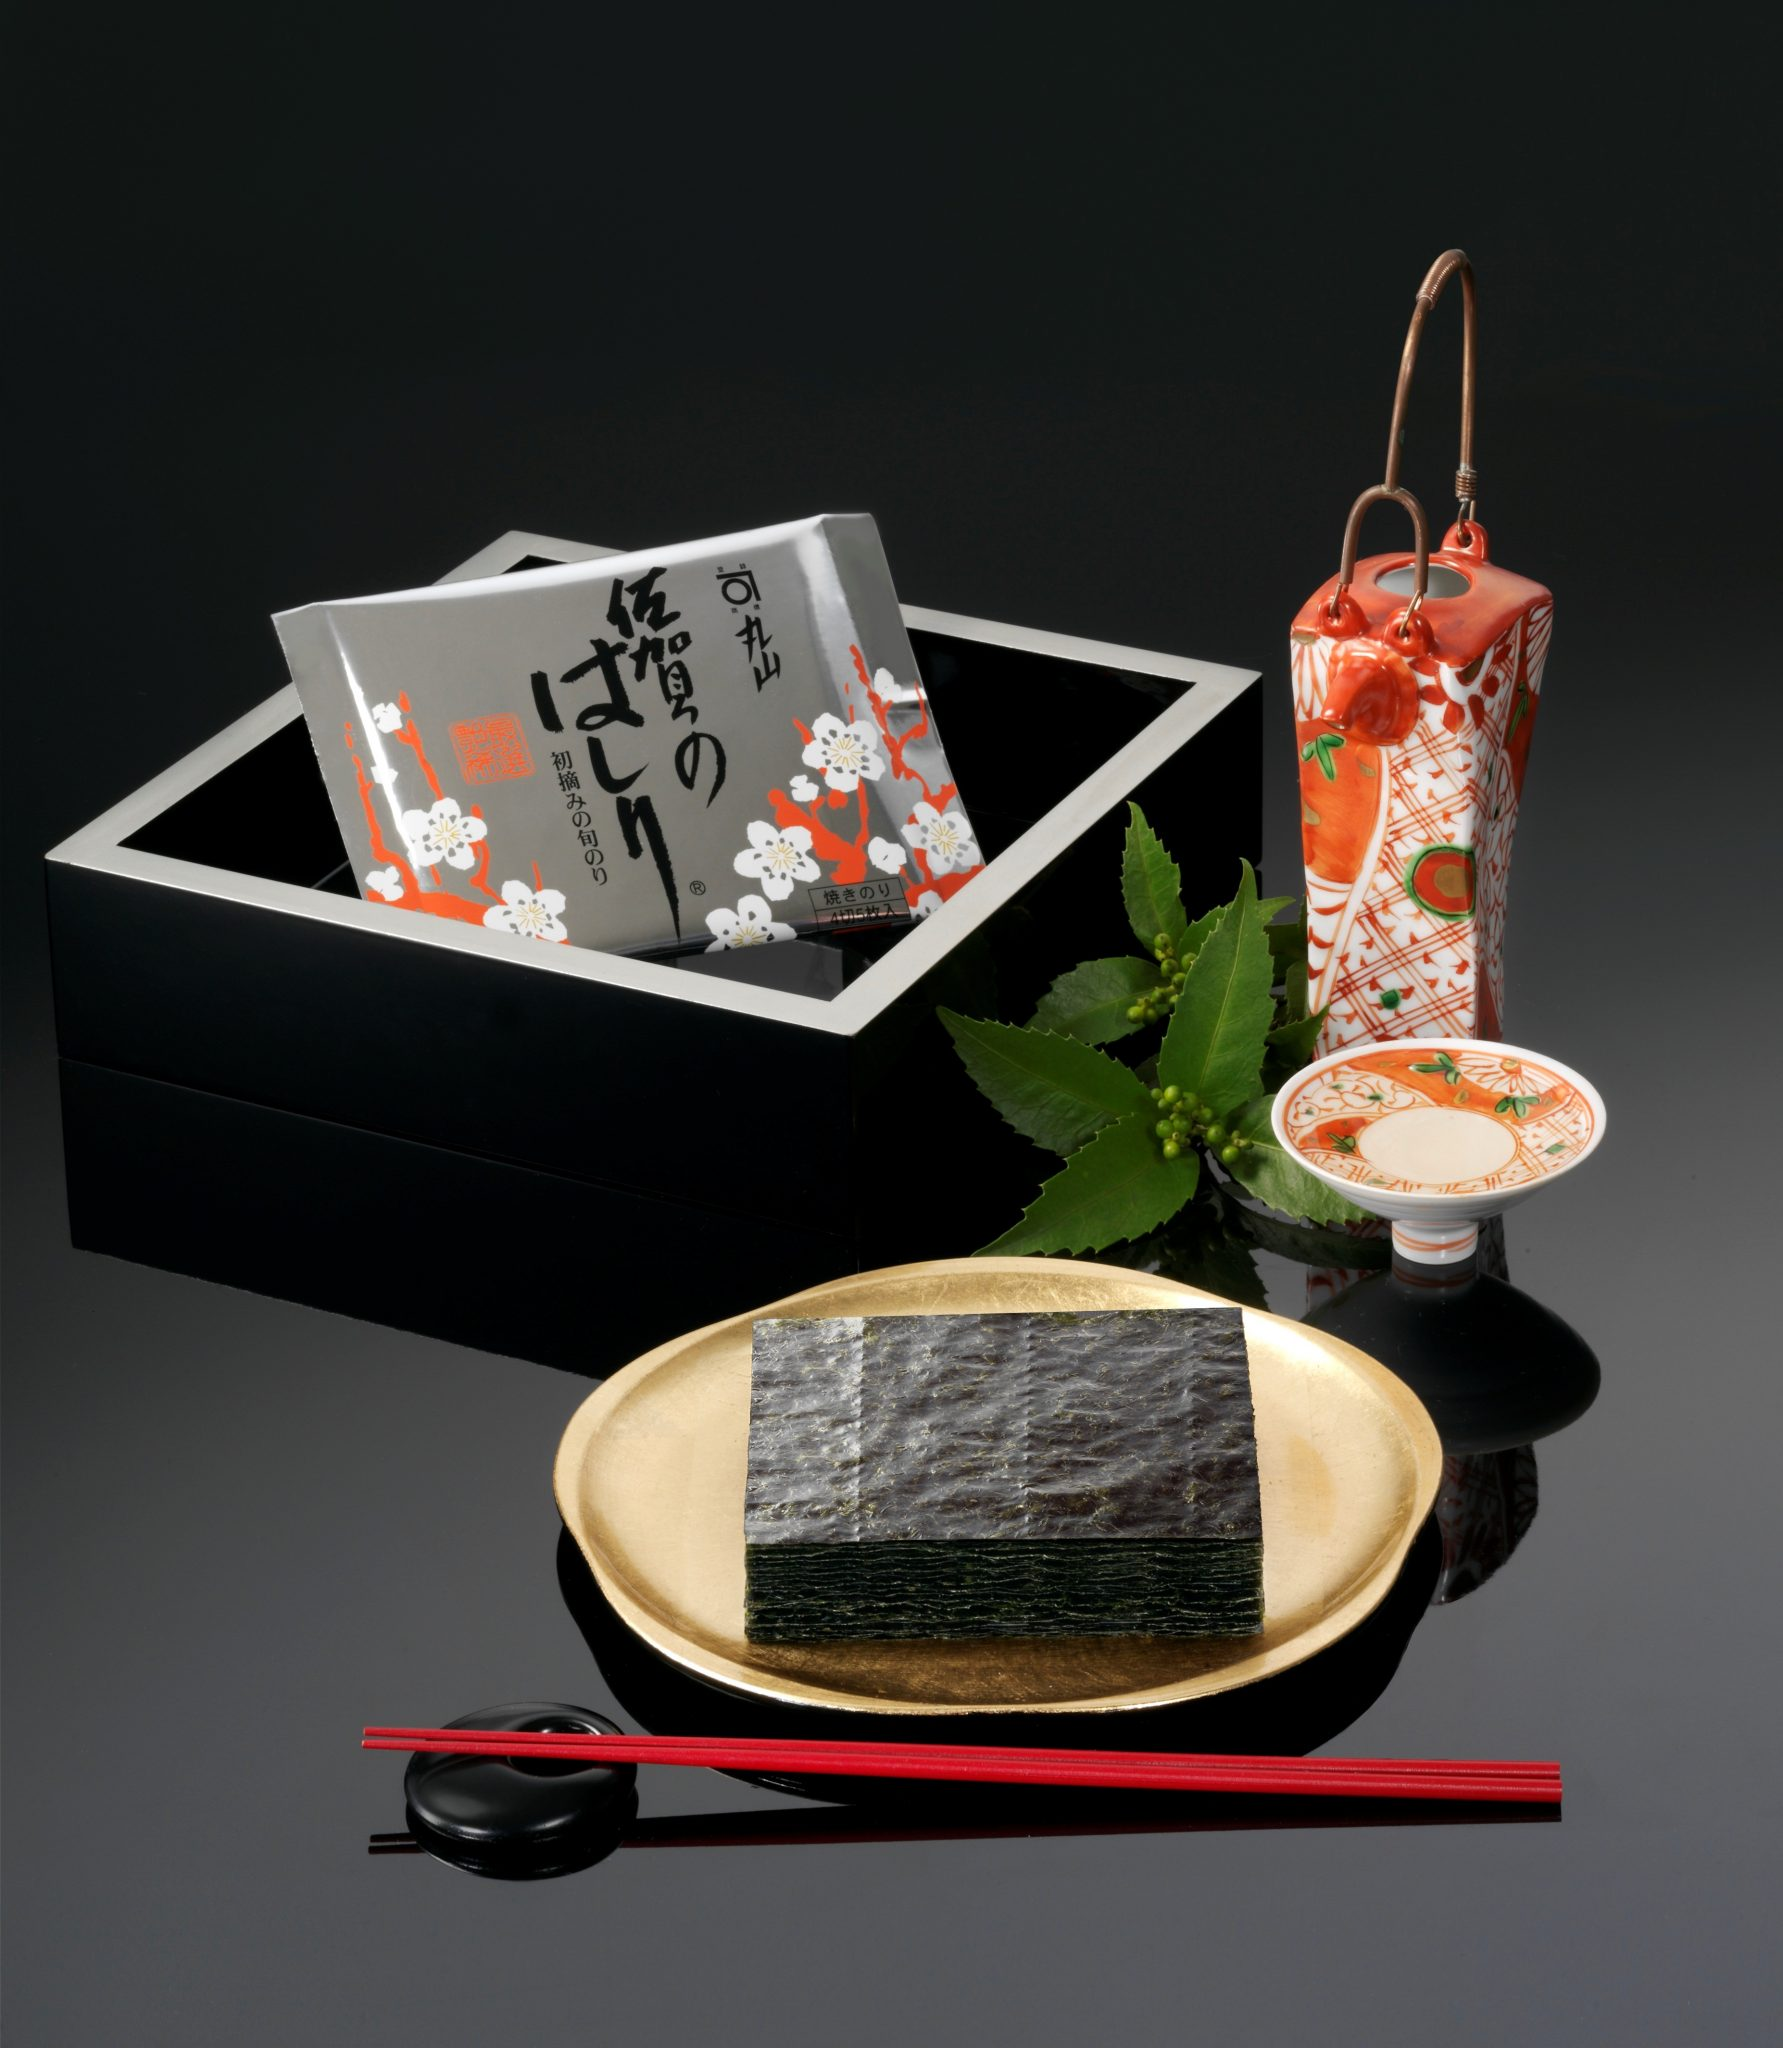 Very much appreciated in Japanese cuisine, Nori seaweed is however little known in France. We invite you to discover nori seaweed, their history, their different varieties and their many health benefits.